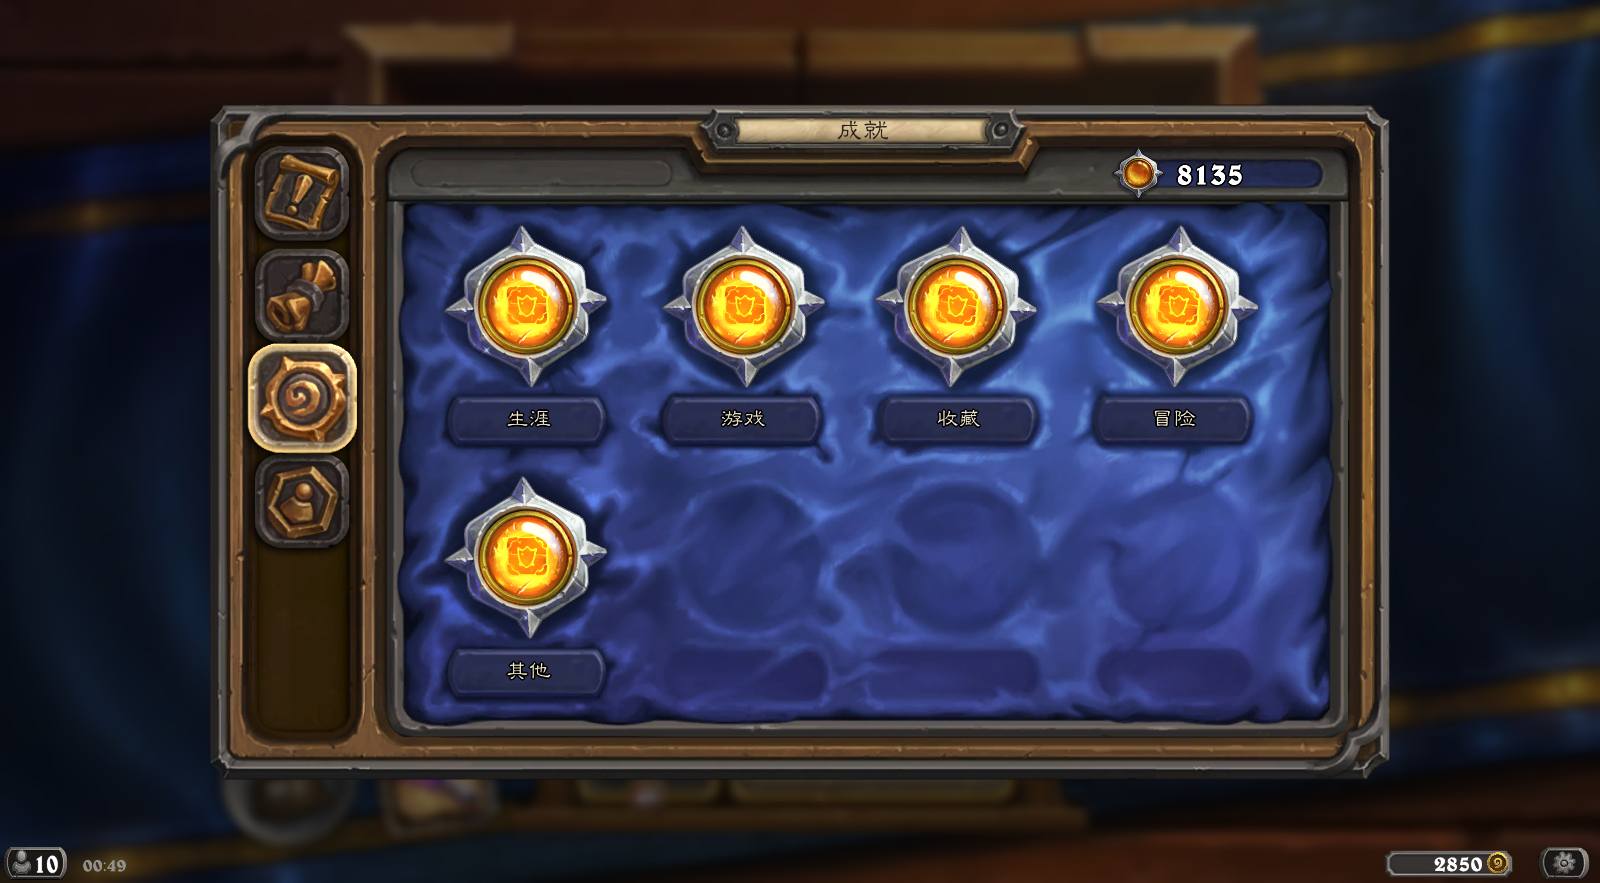 Hearthstone Screenshot 11-15-20 00.49.09.png